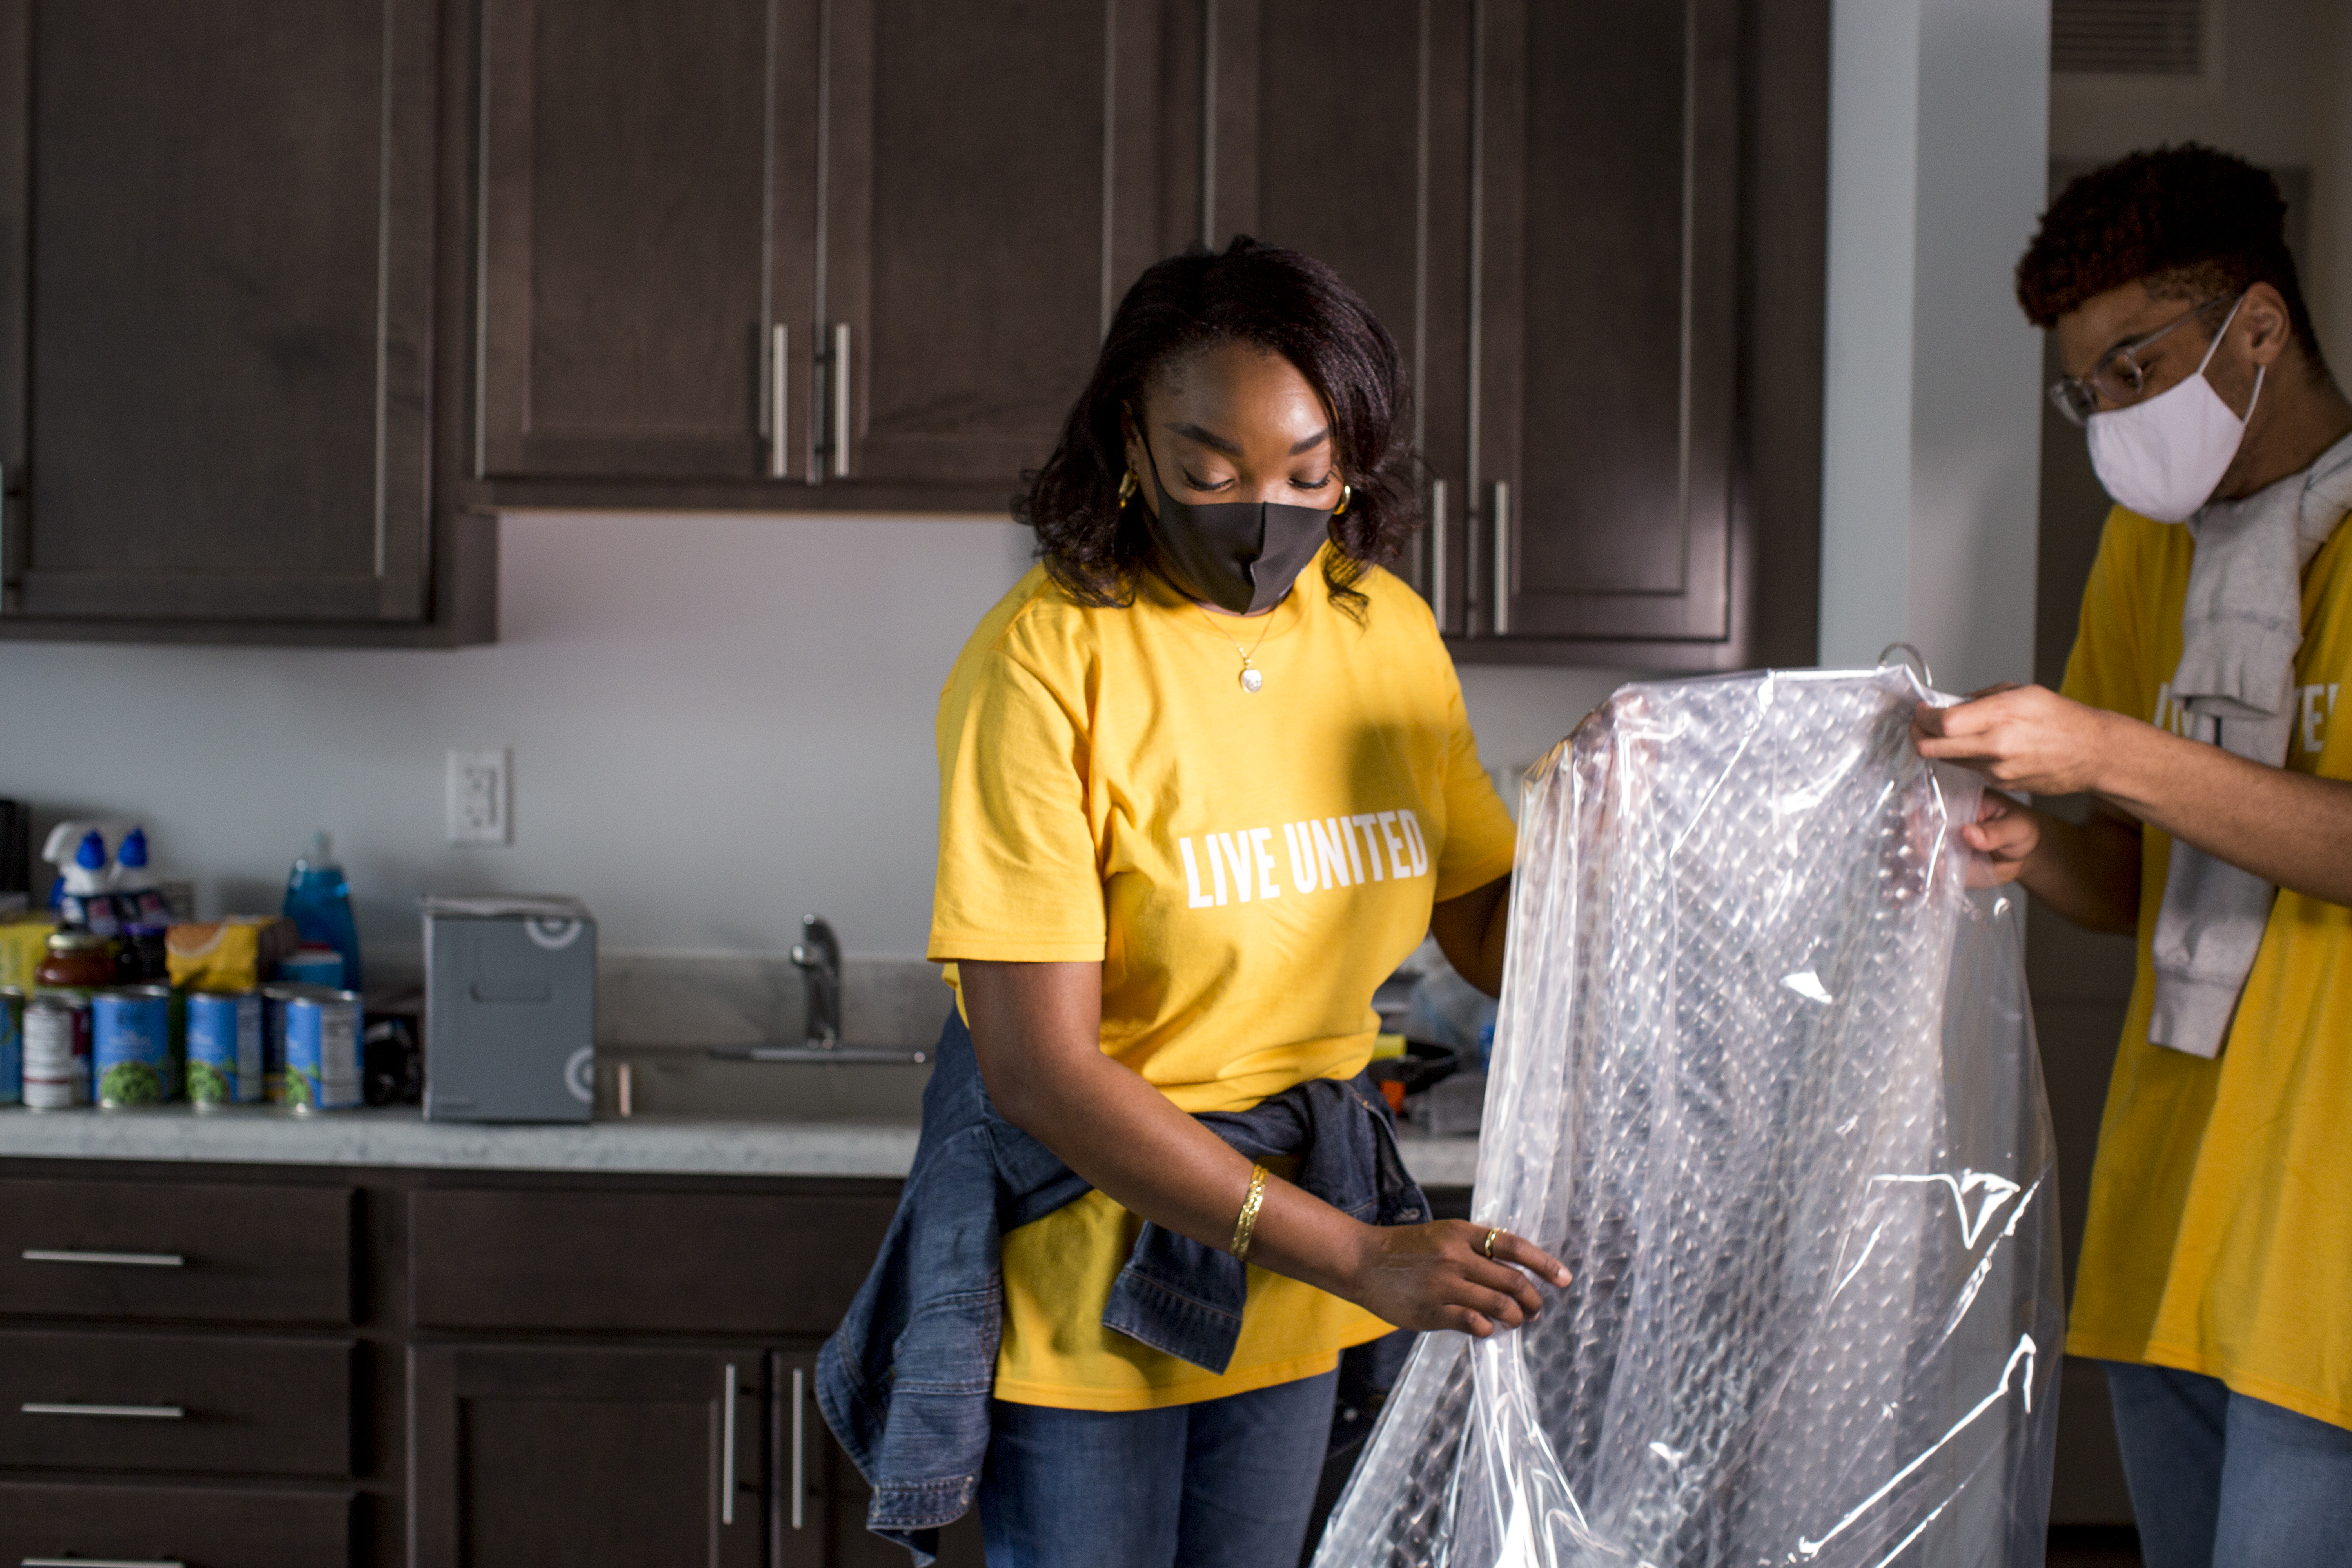 Photo of two volunteers wearing Live United shirts while unpacking household items in a new home for one of The Way Home project's recipients.